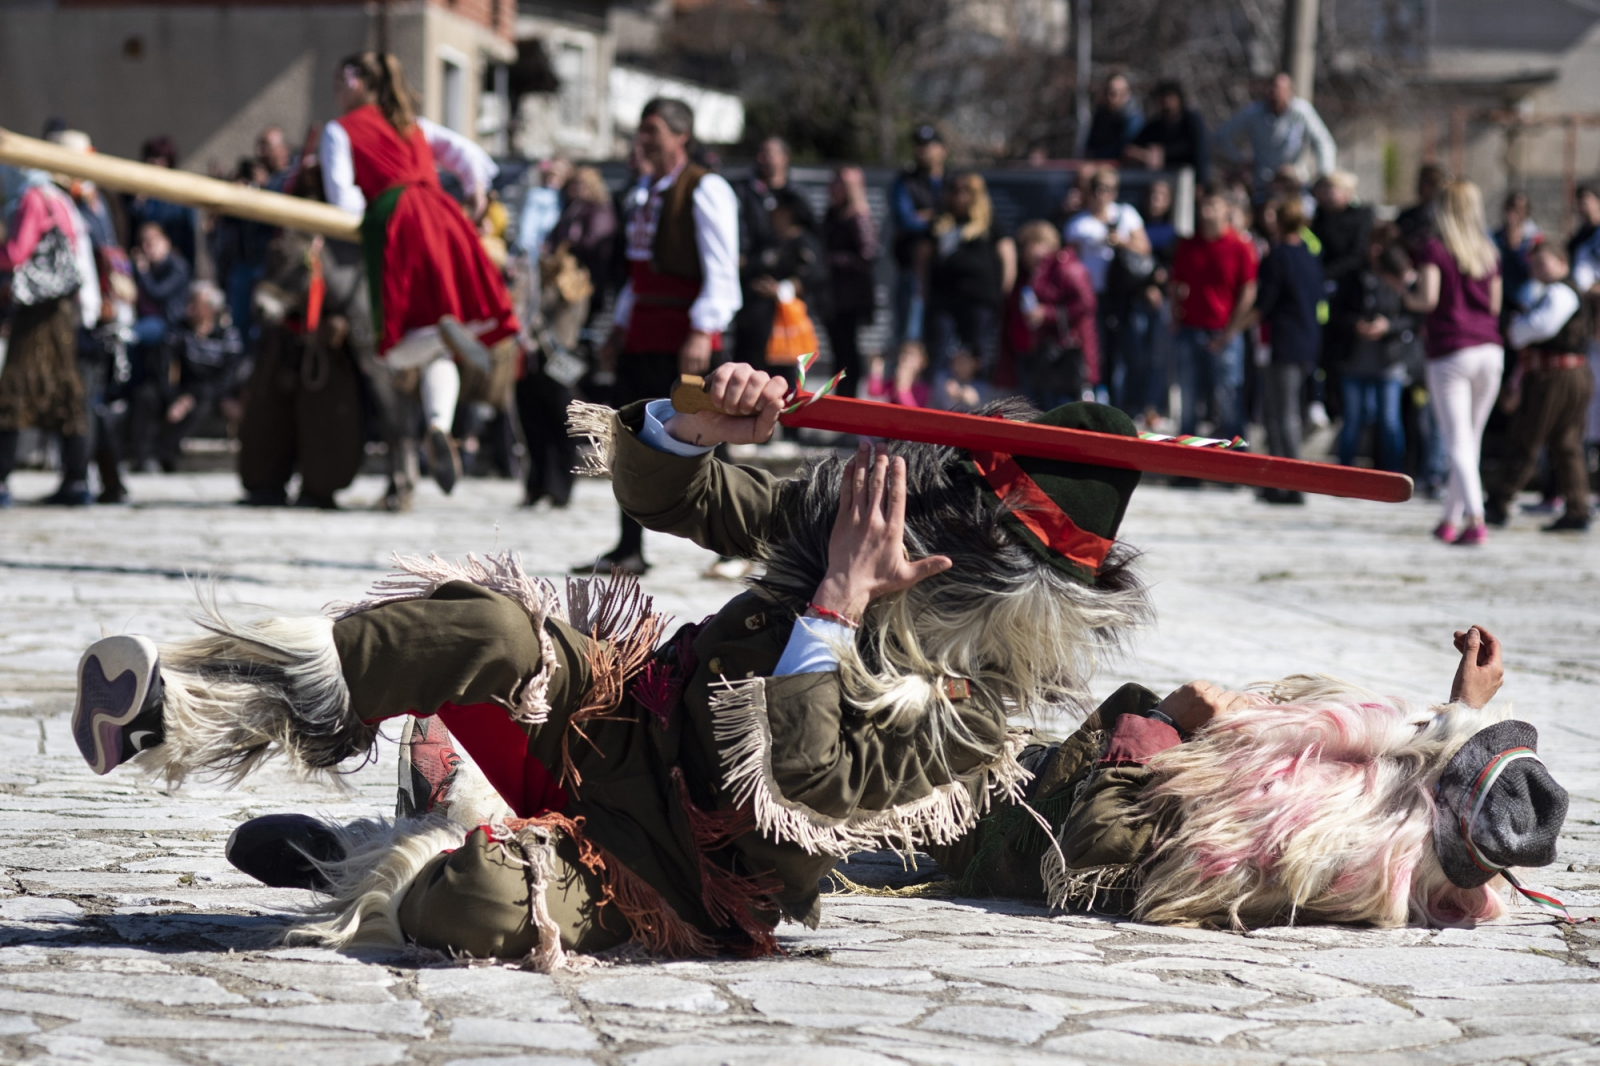 Kukeri mummers perform simulated sword fights in Popintsi for Sirnitsa. One person inevitably is vanquished and falls dramatically on the ground, followed by the victor somersaulting over them. The kukeri dress as bears to chase away evil spirits.